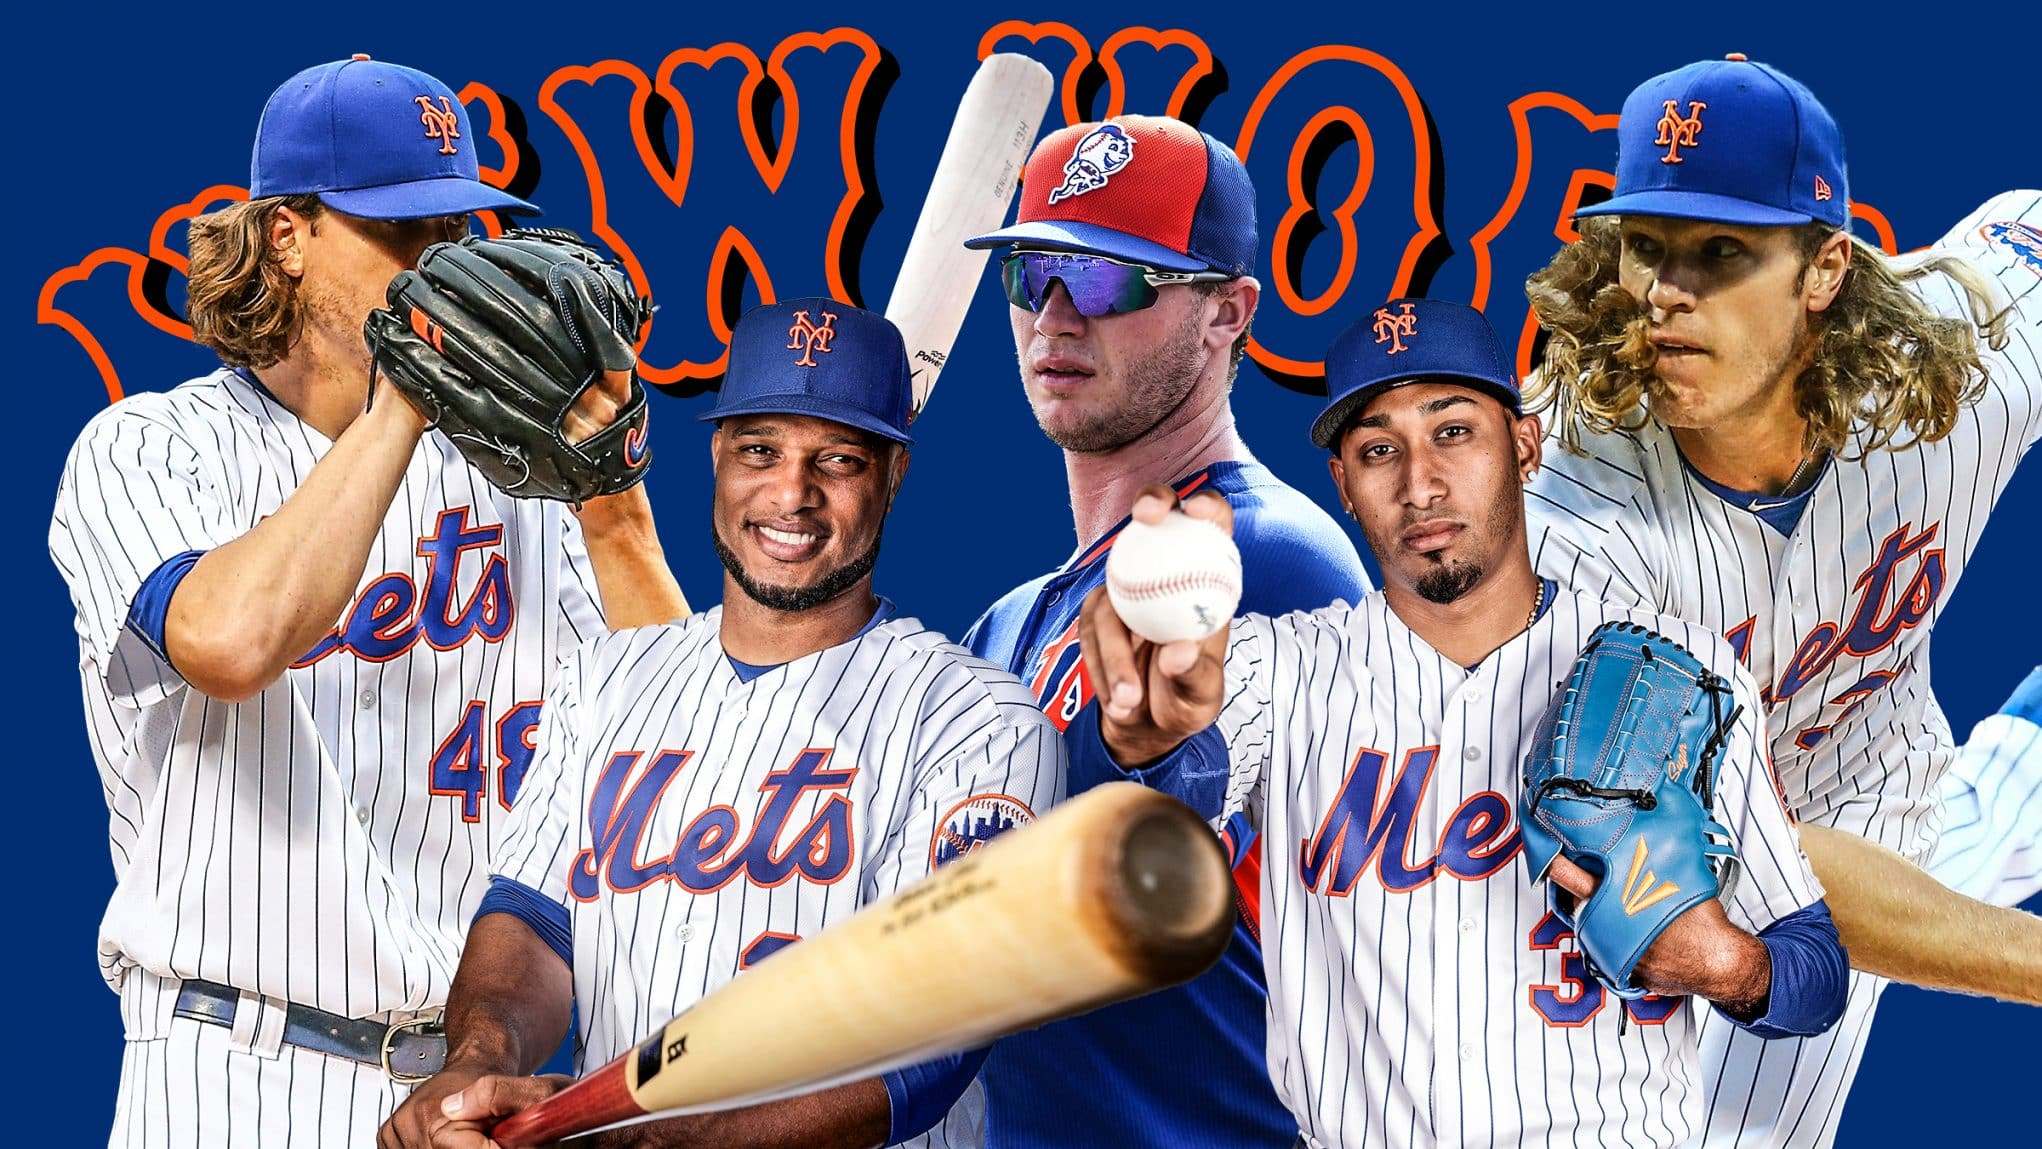 Be careful; the New York Mets may shock the baseball world